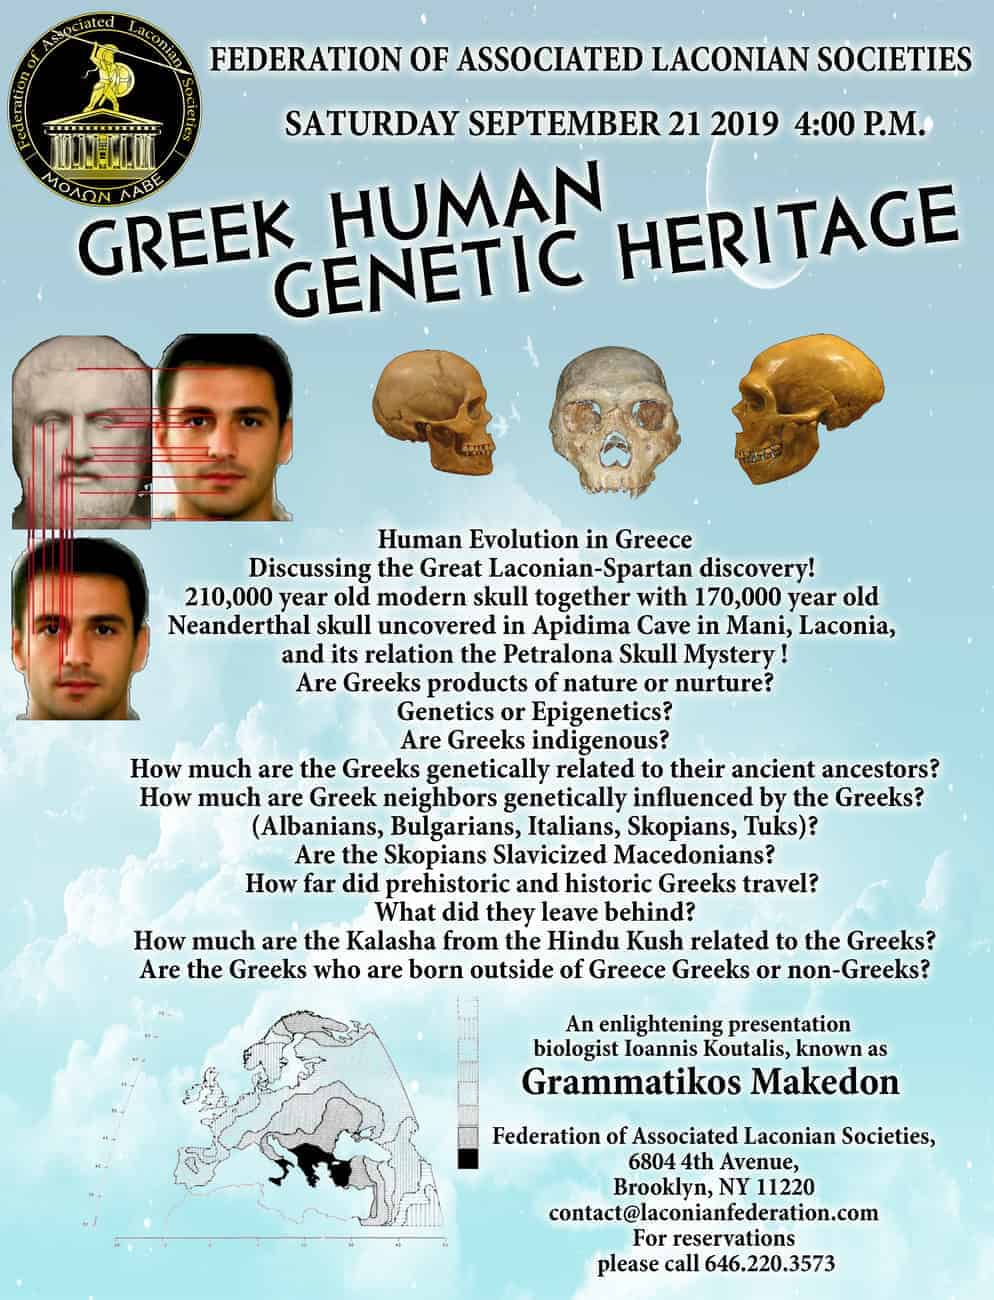 Greek Human Genetic Heritage